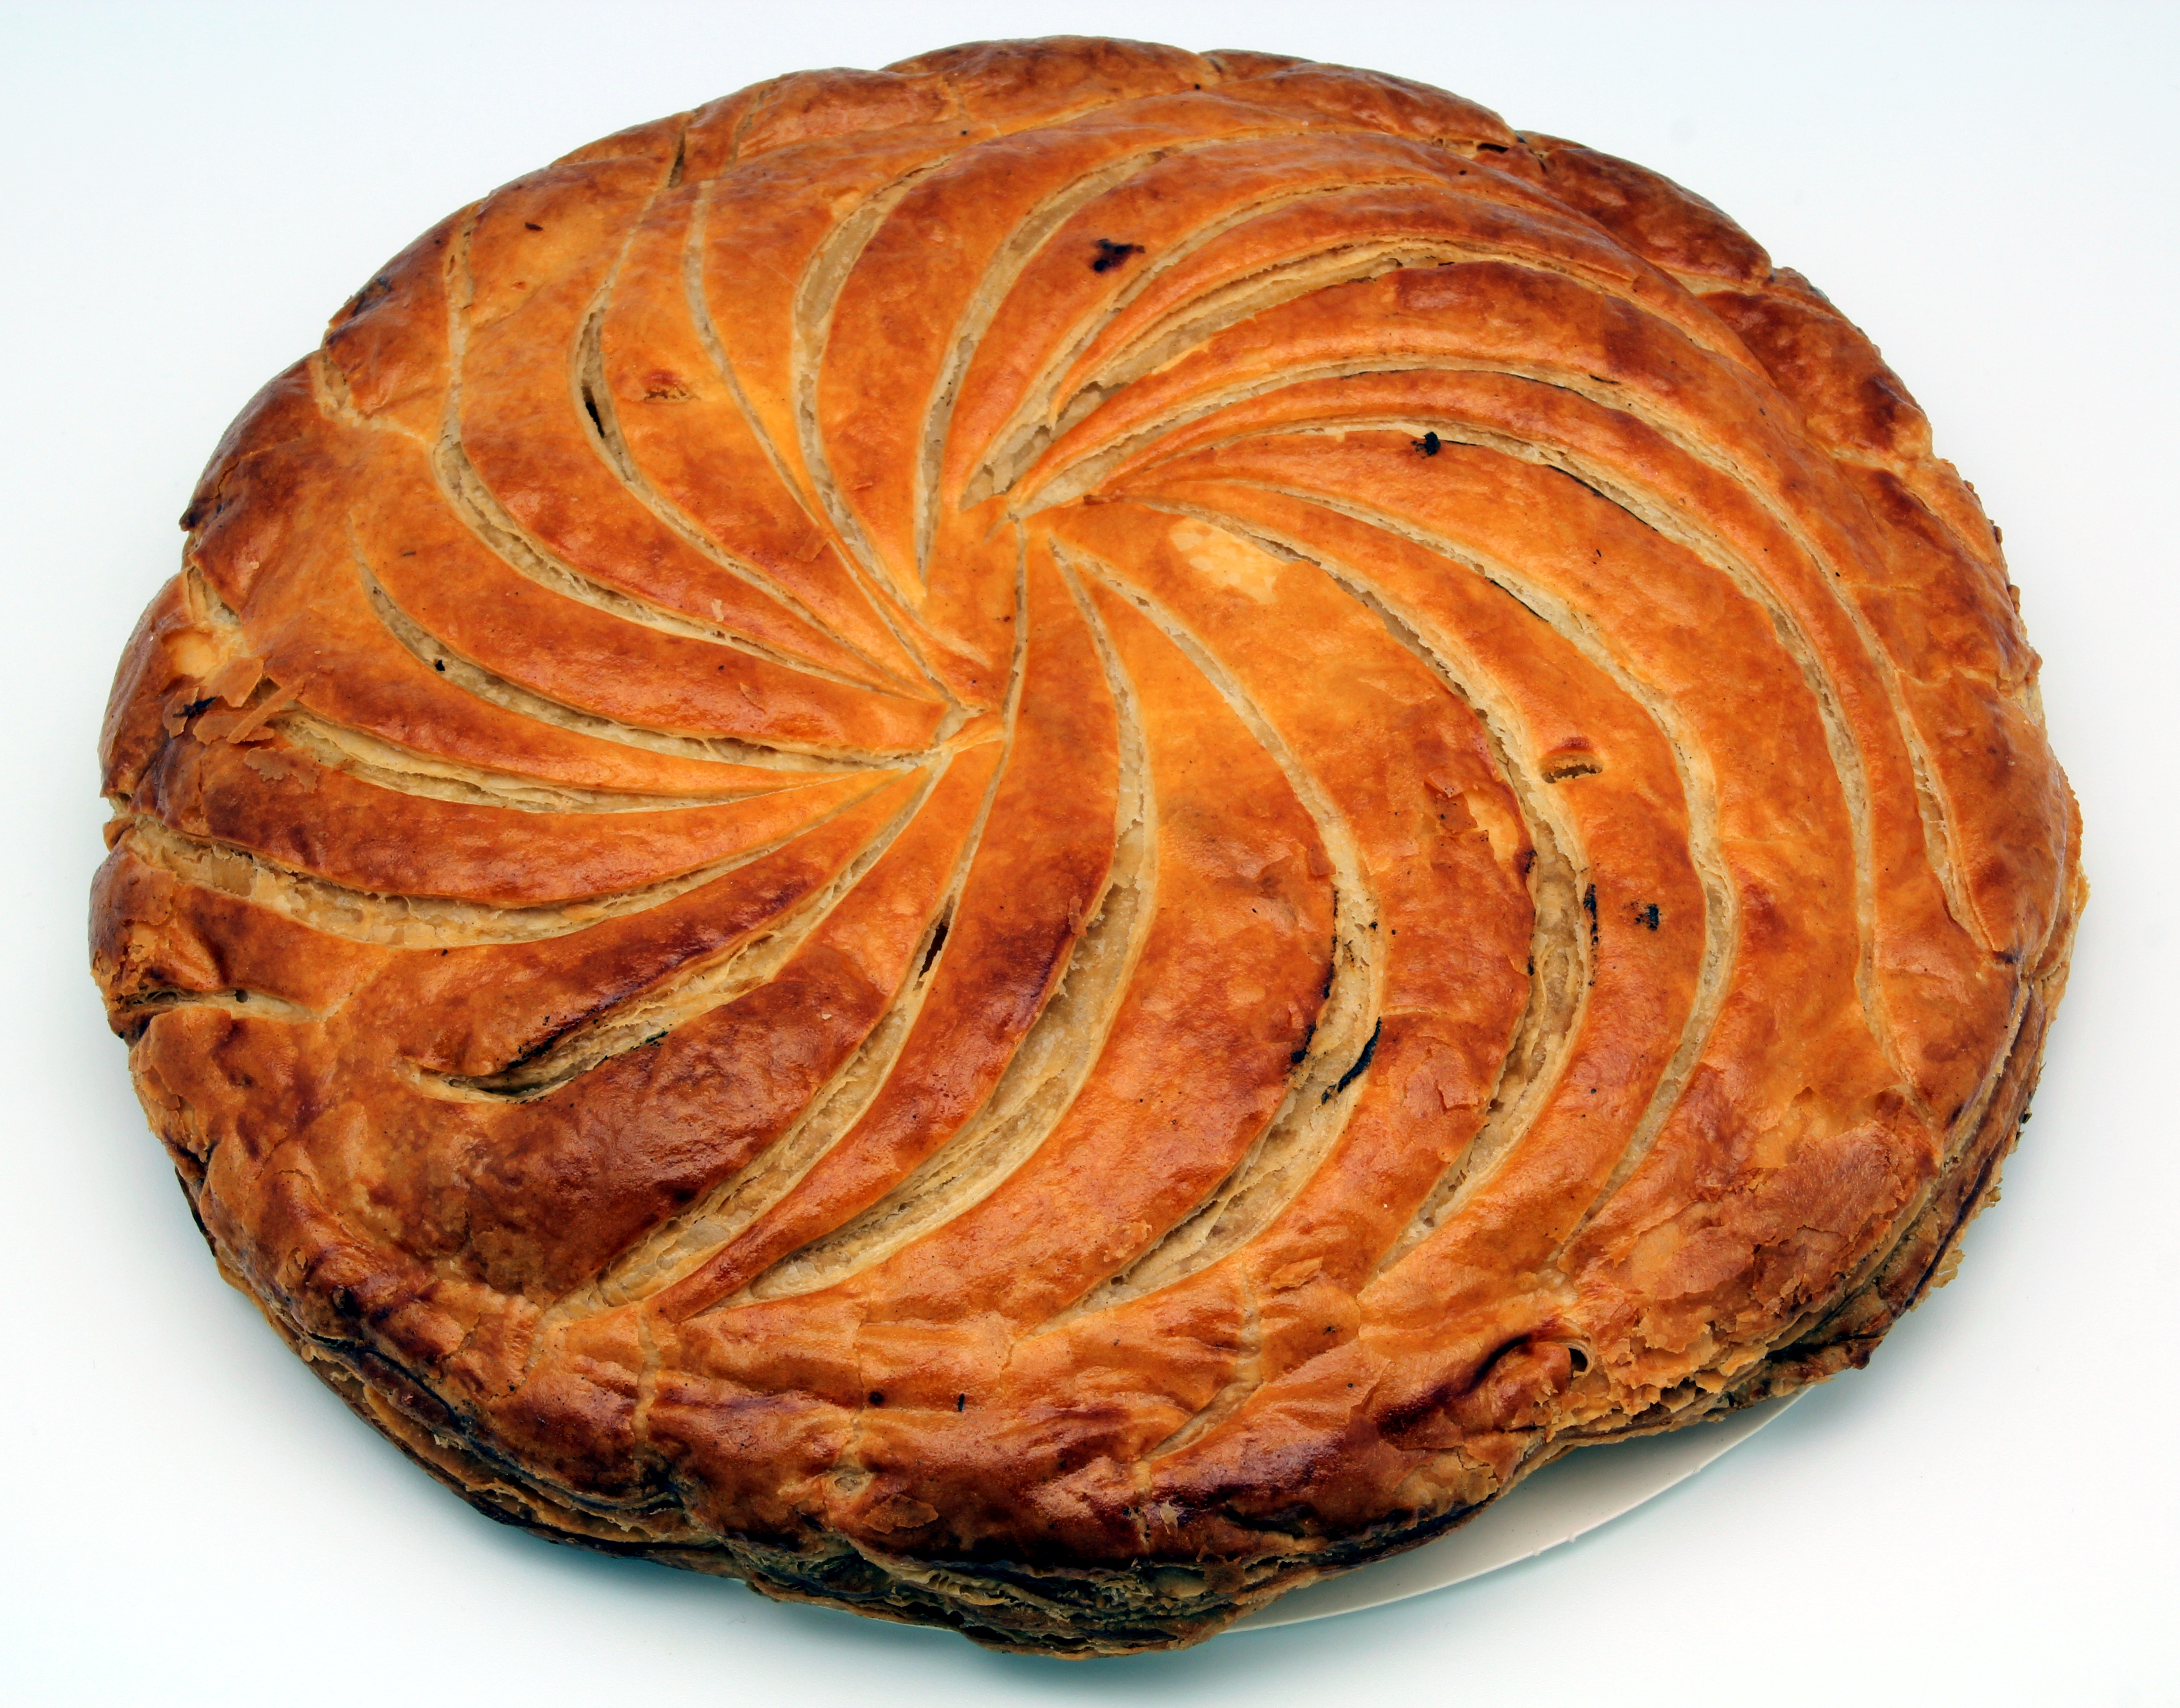 File:Galette des rois 2013.jpg - Wikimedia Commons